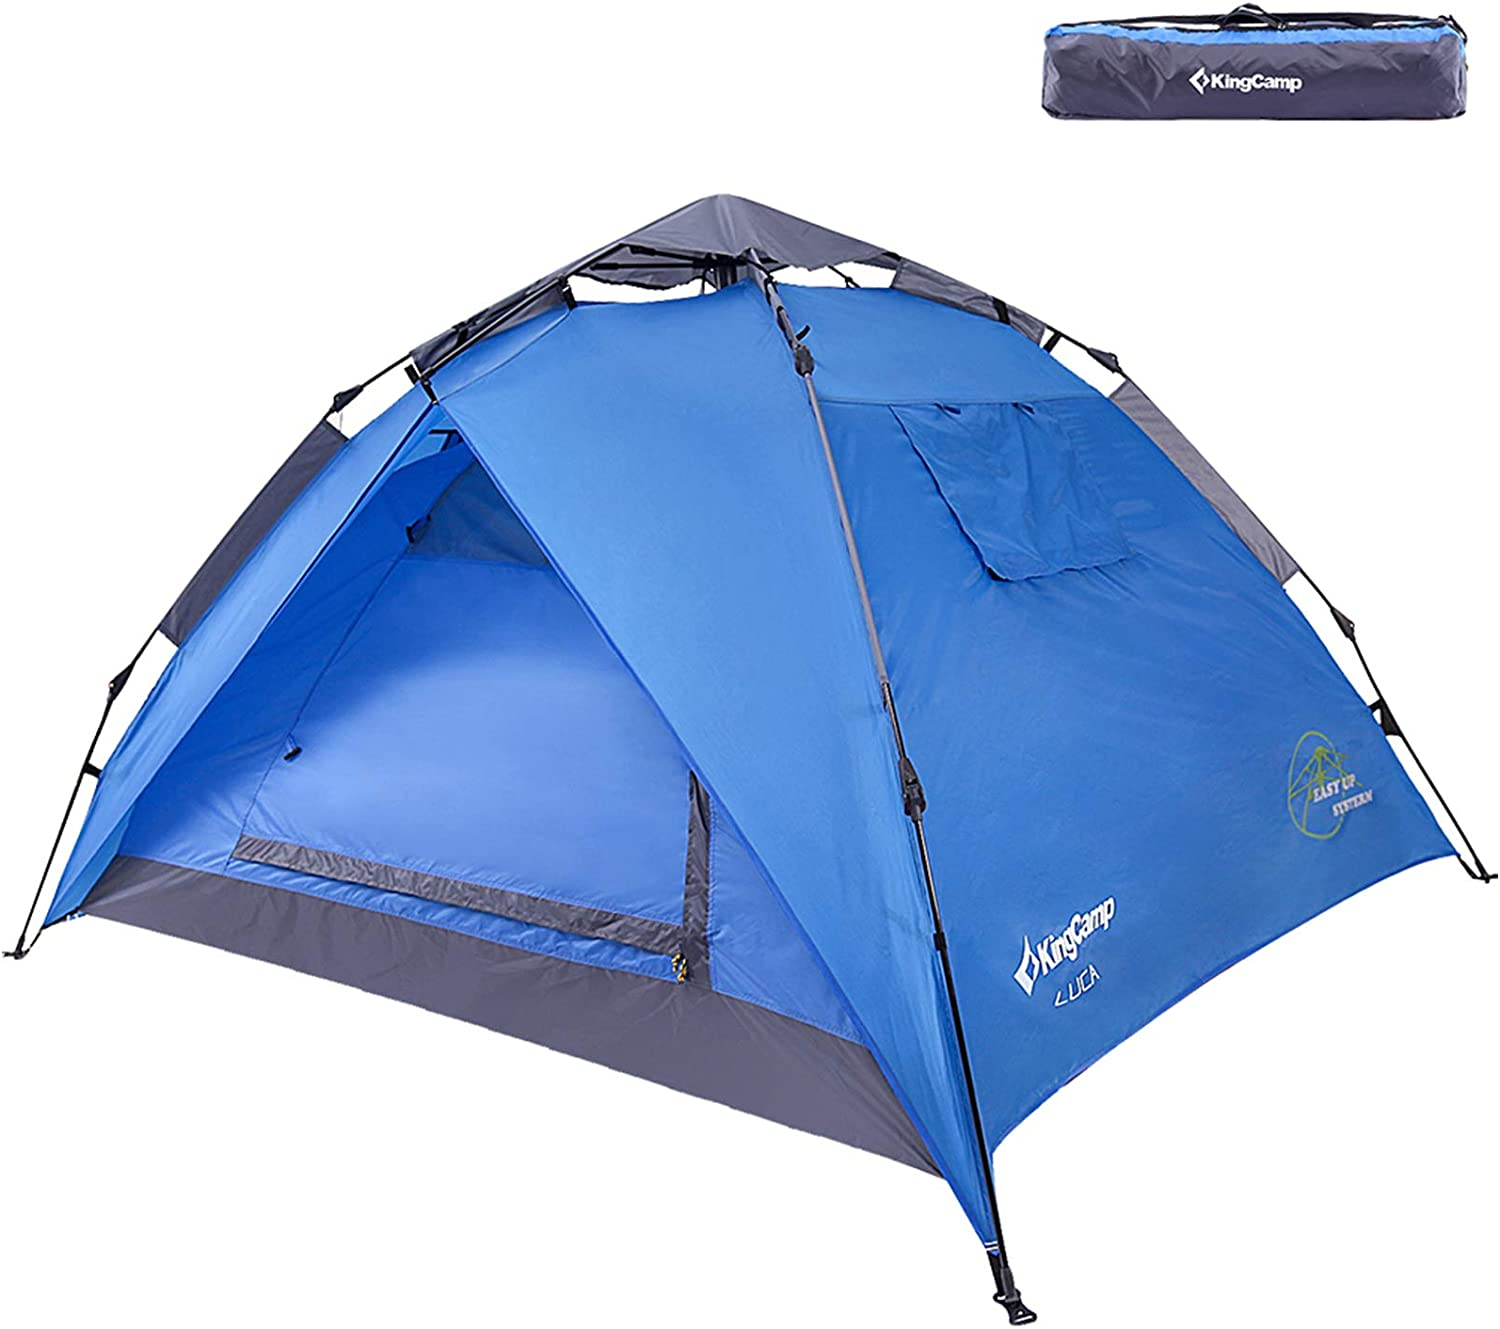 KingCamp 3-Persons 2-Seasons Quick-Up 2-IN-1Durable Roomy Outdoor Camping Tent Two Door Awnings with Carry Bag for Camping Beach Garden